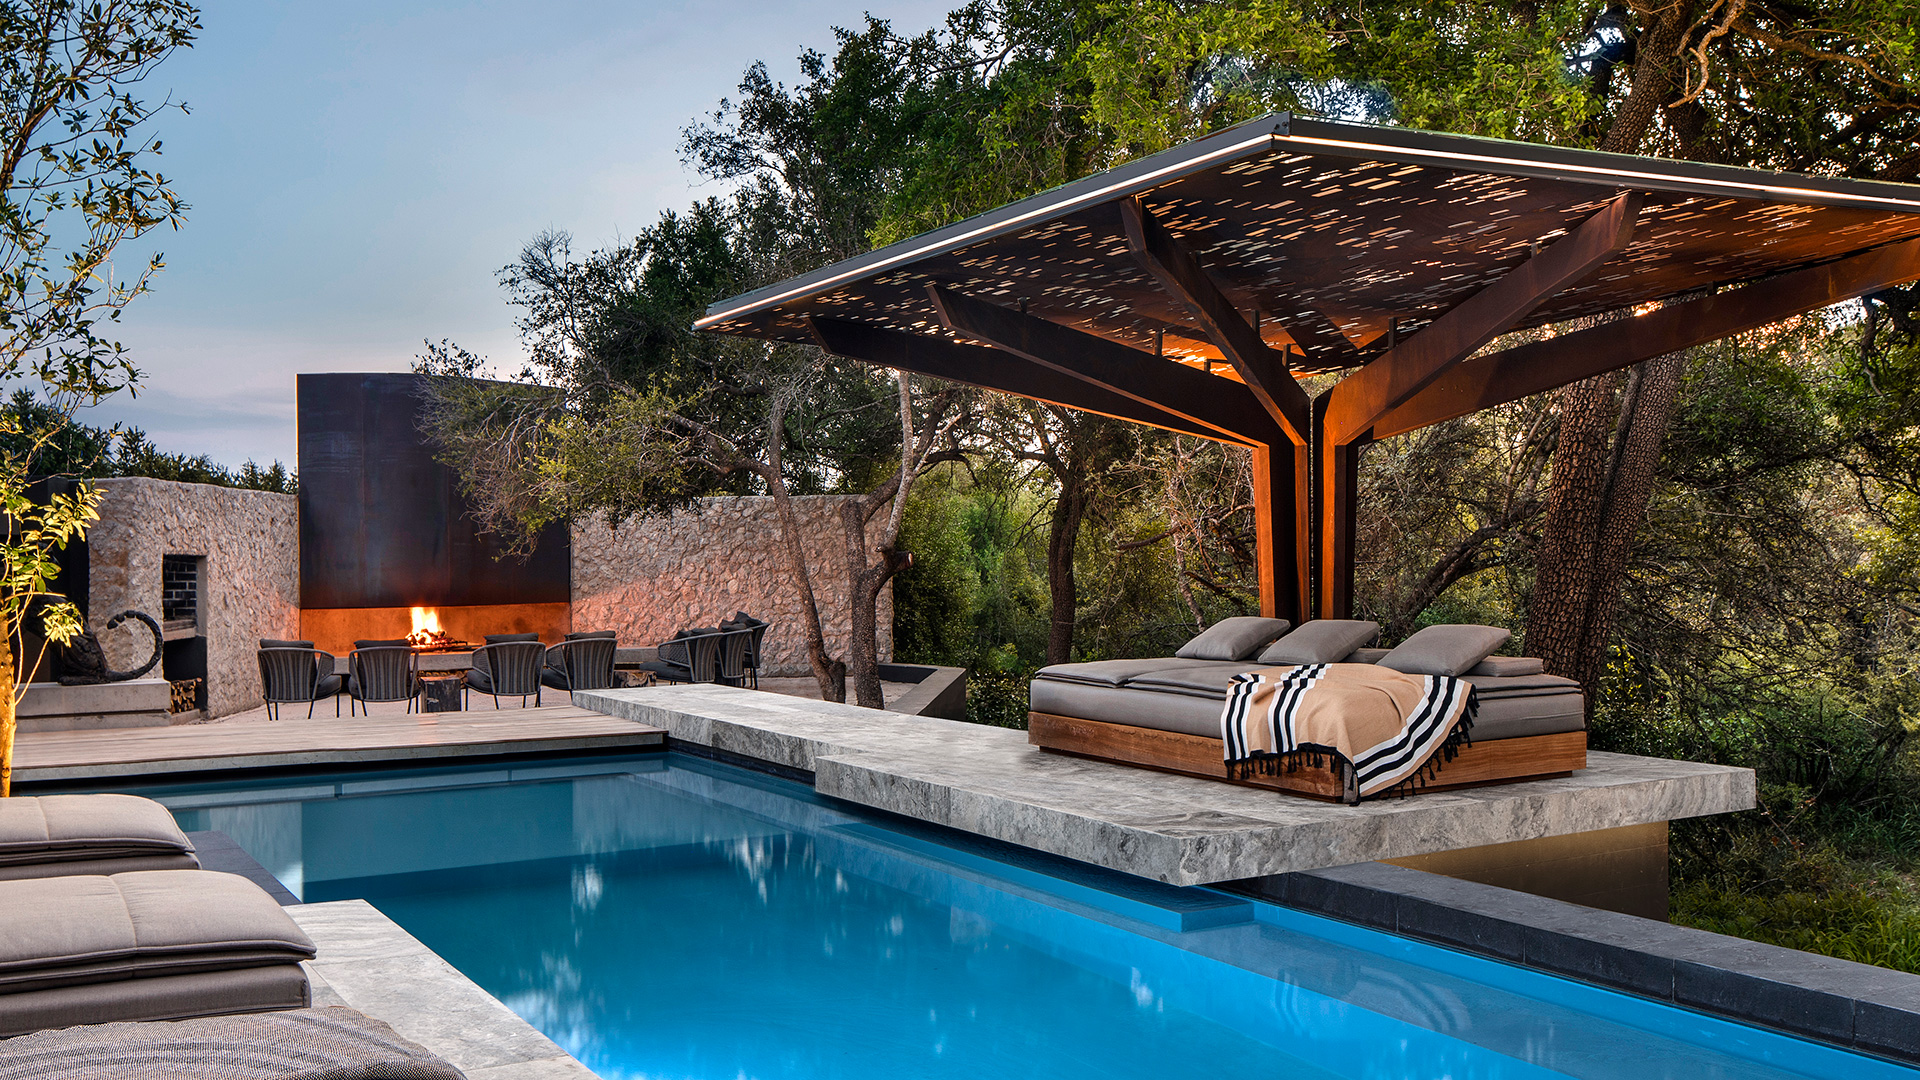 The patio terrace with shaded pavilion and the pool | Cheetah Plains | ARRCC | STIR